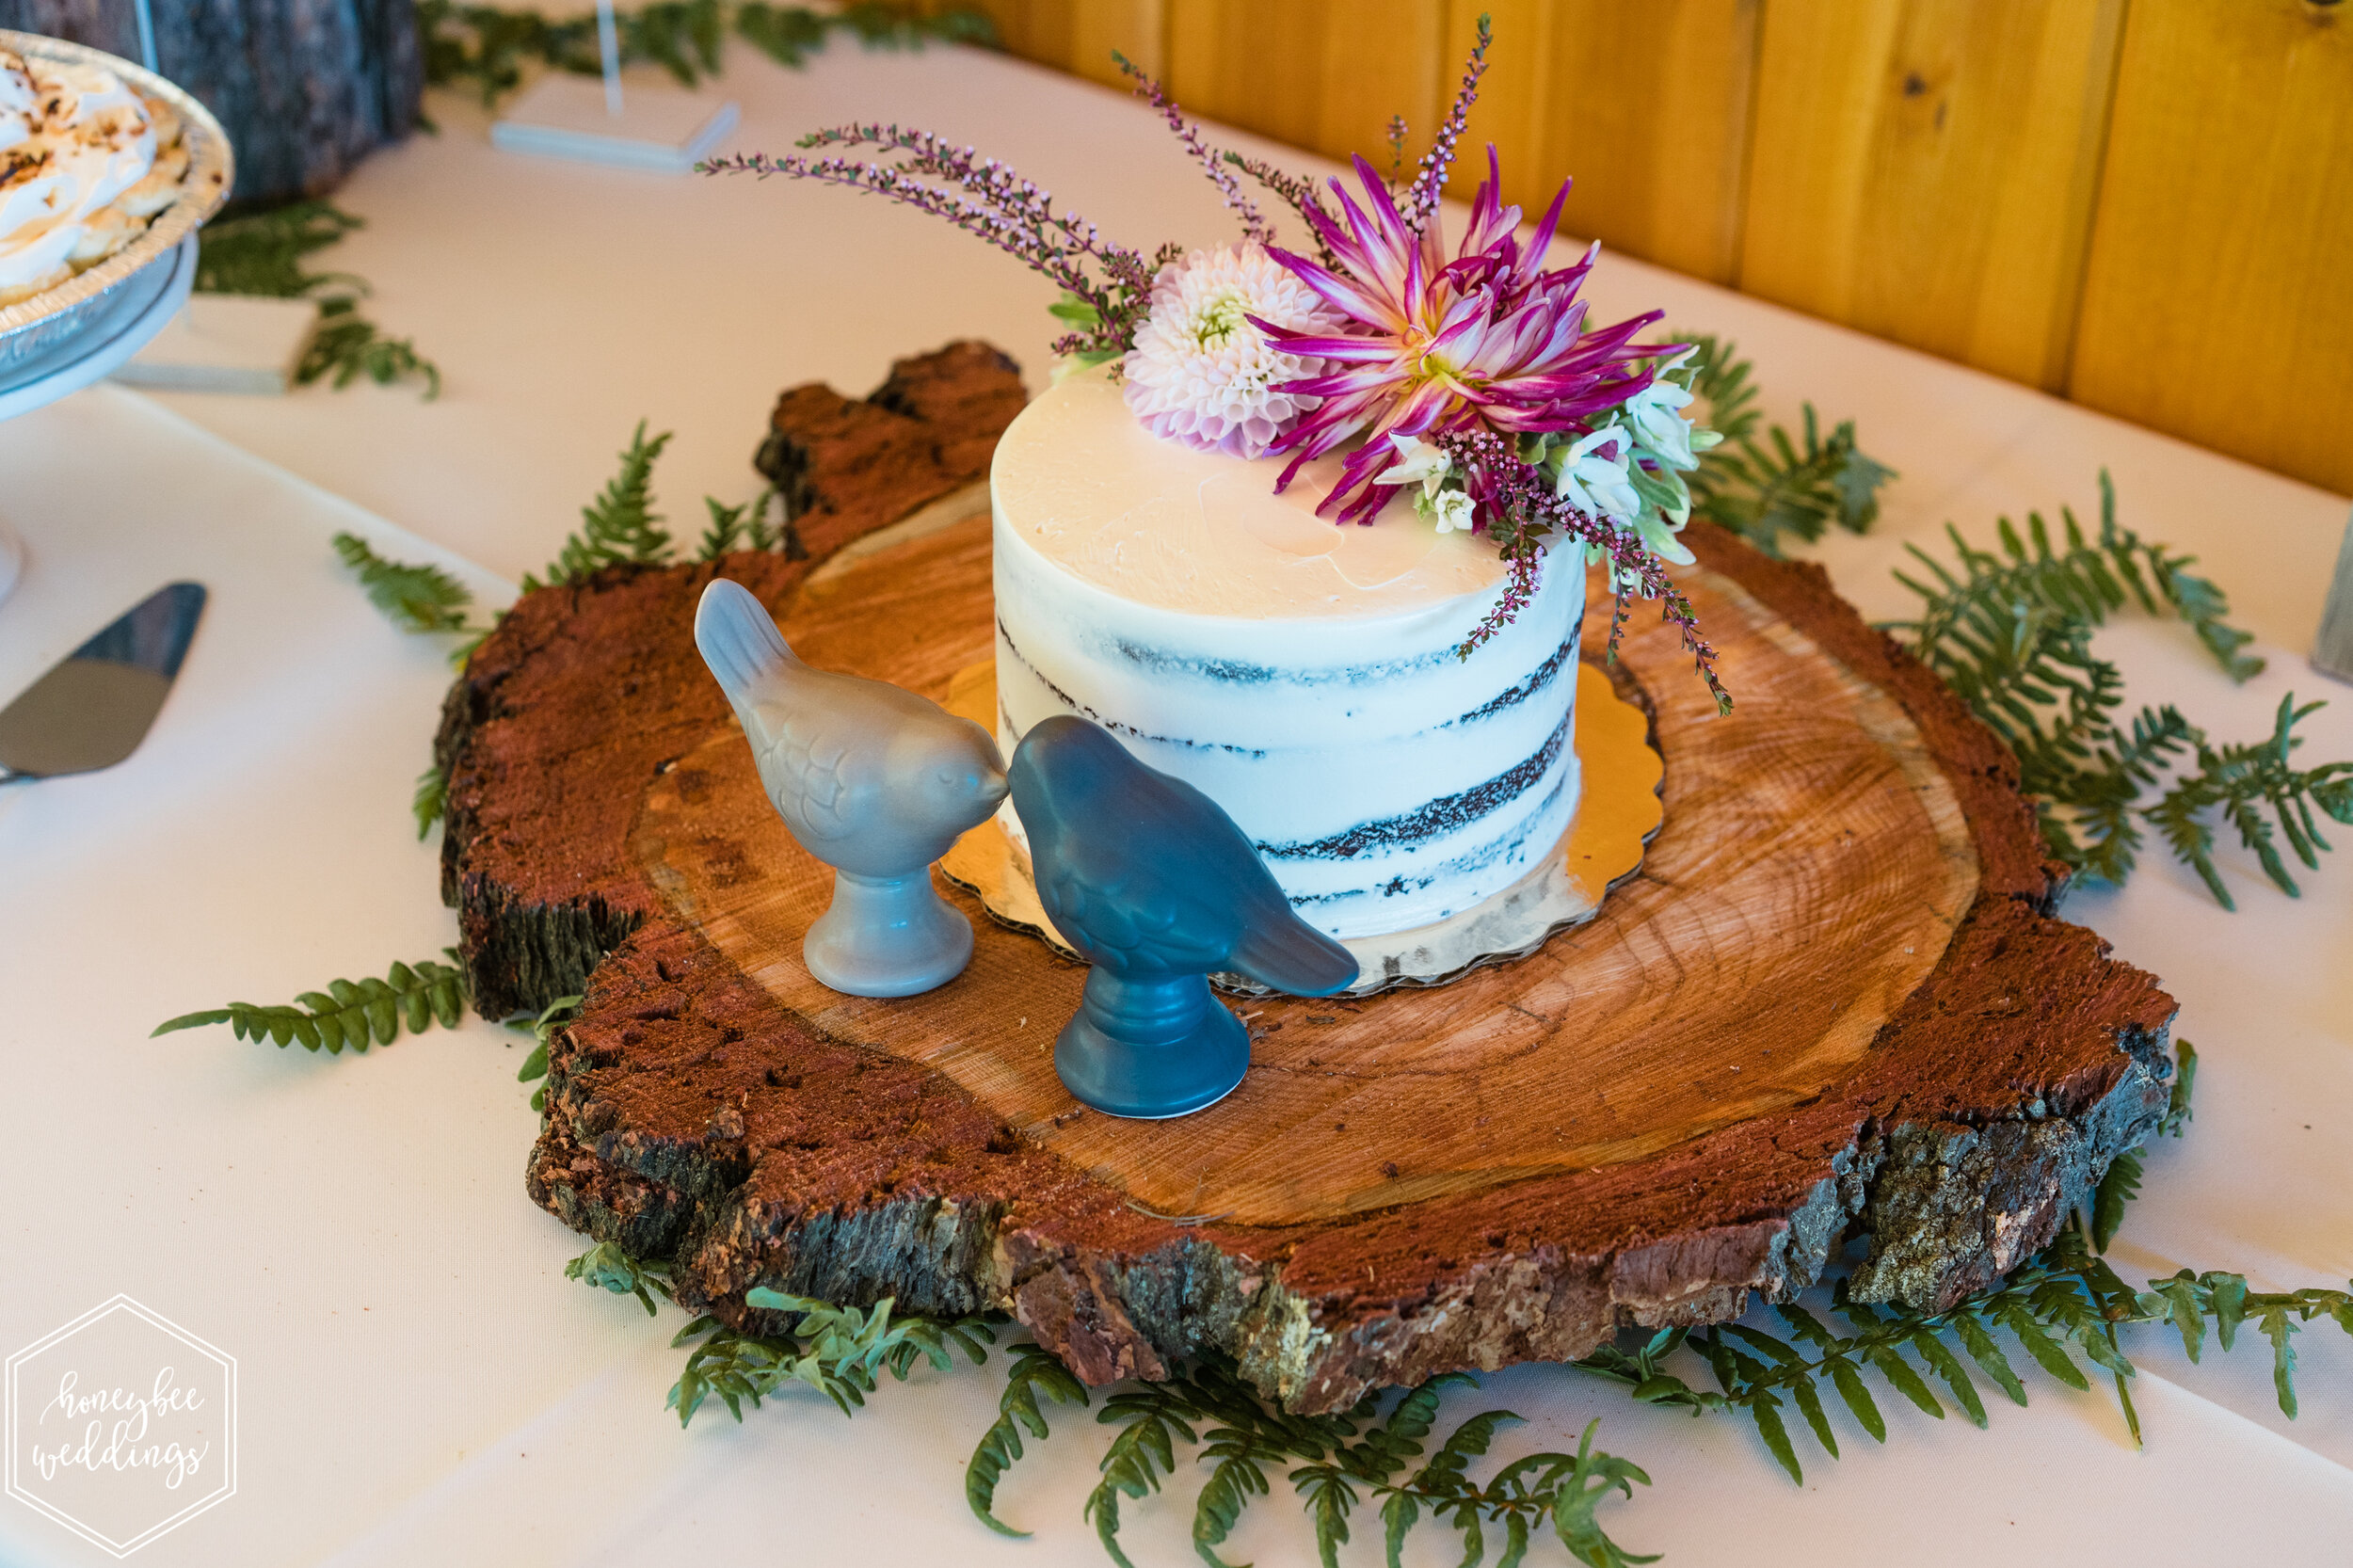 082Glacier National Park Wedding_Glacier Outdoor Center_Honeybee Weddings_Anna & Seth_July 21, 2019-239.jpg